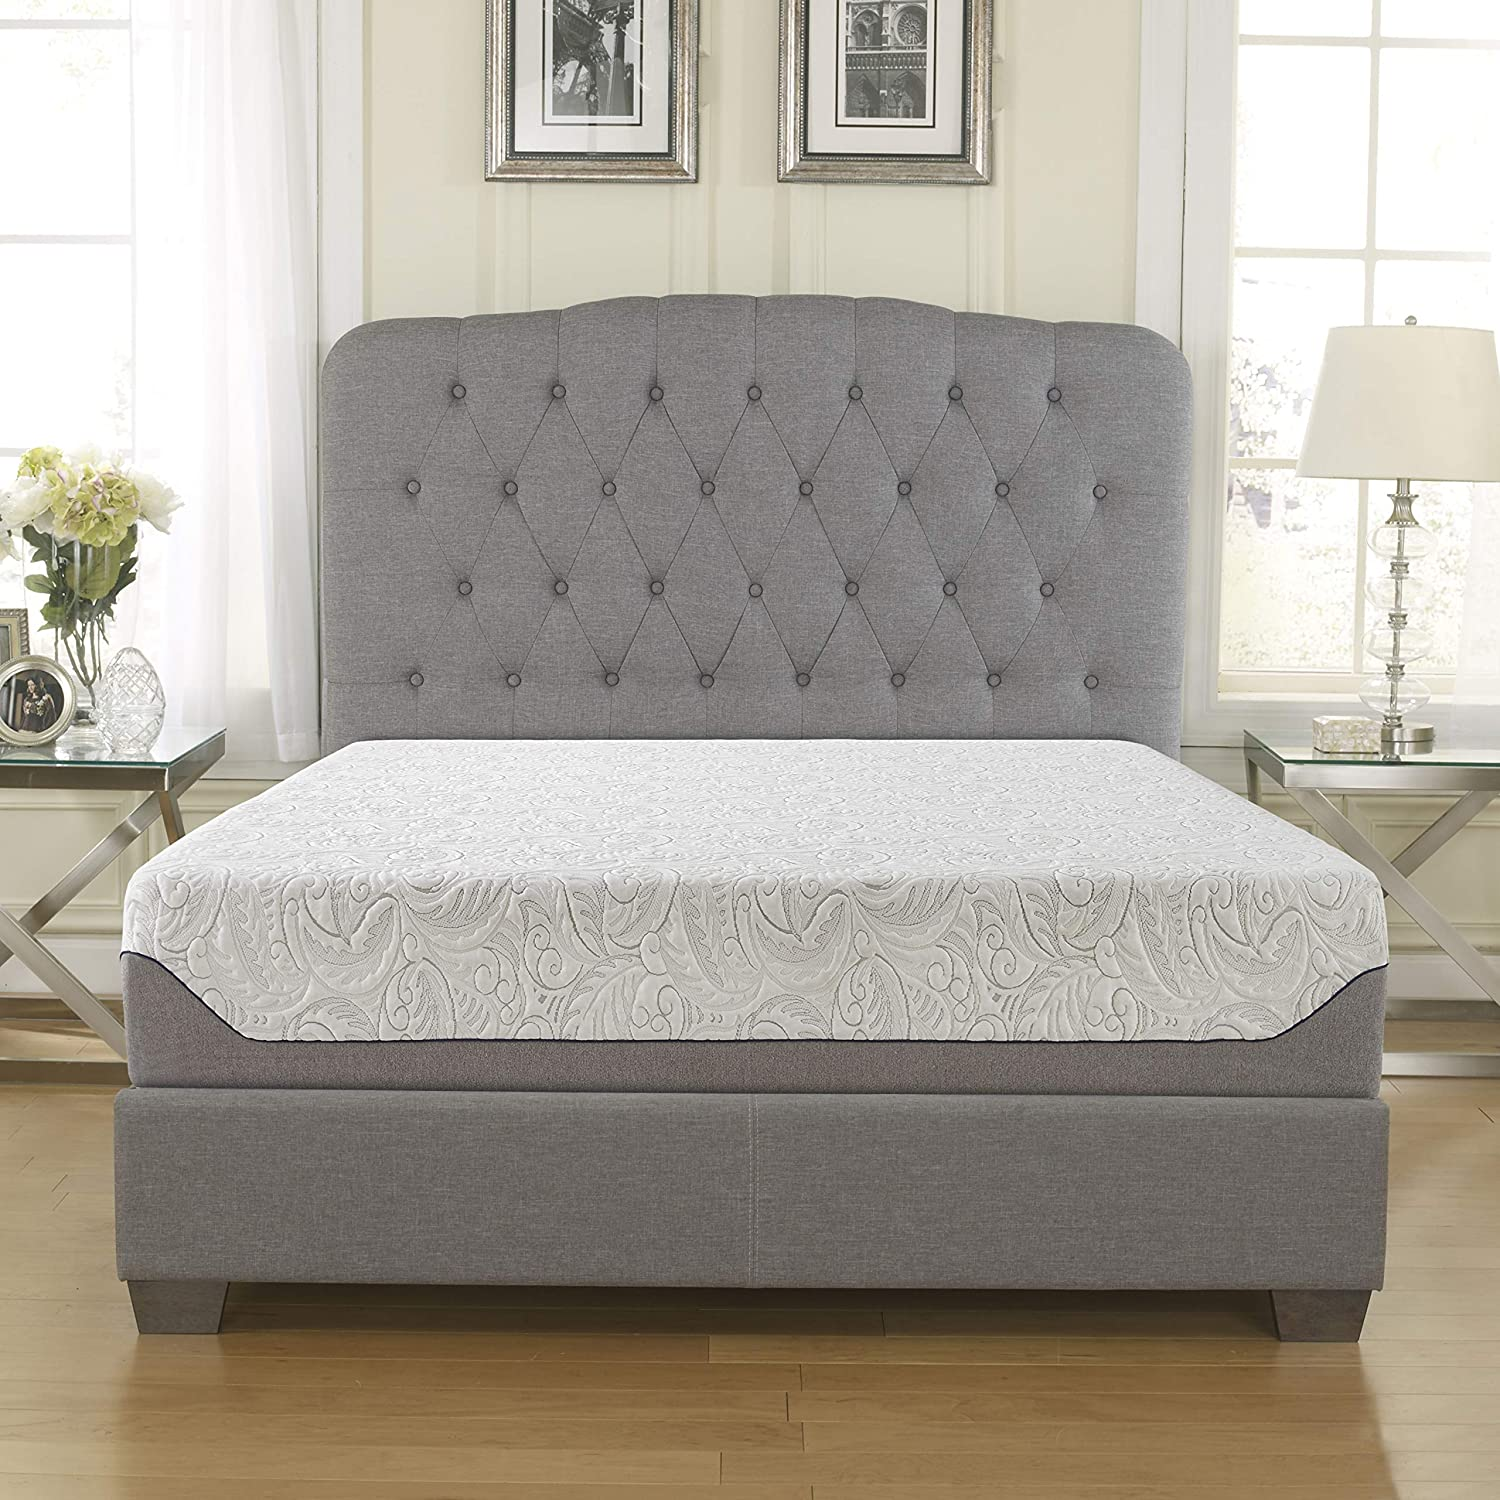 Boyd Sleep Cooling Air Flow Gel Memory Foam Mattress, 10 King